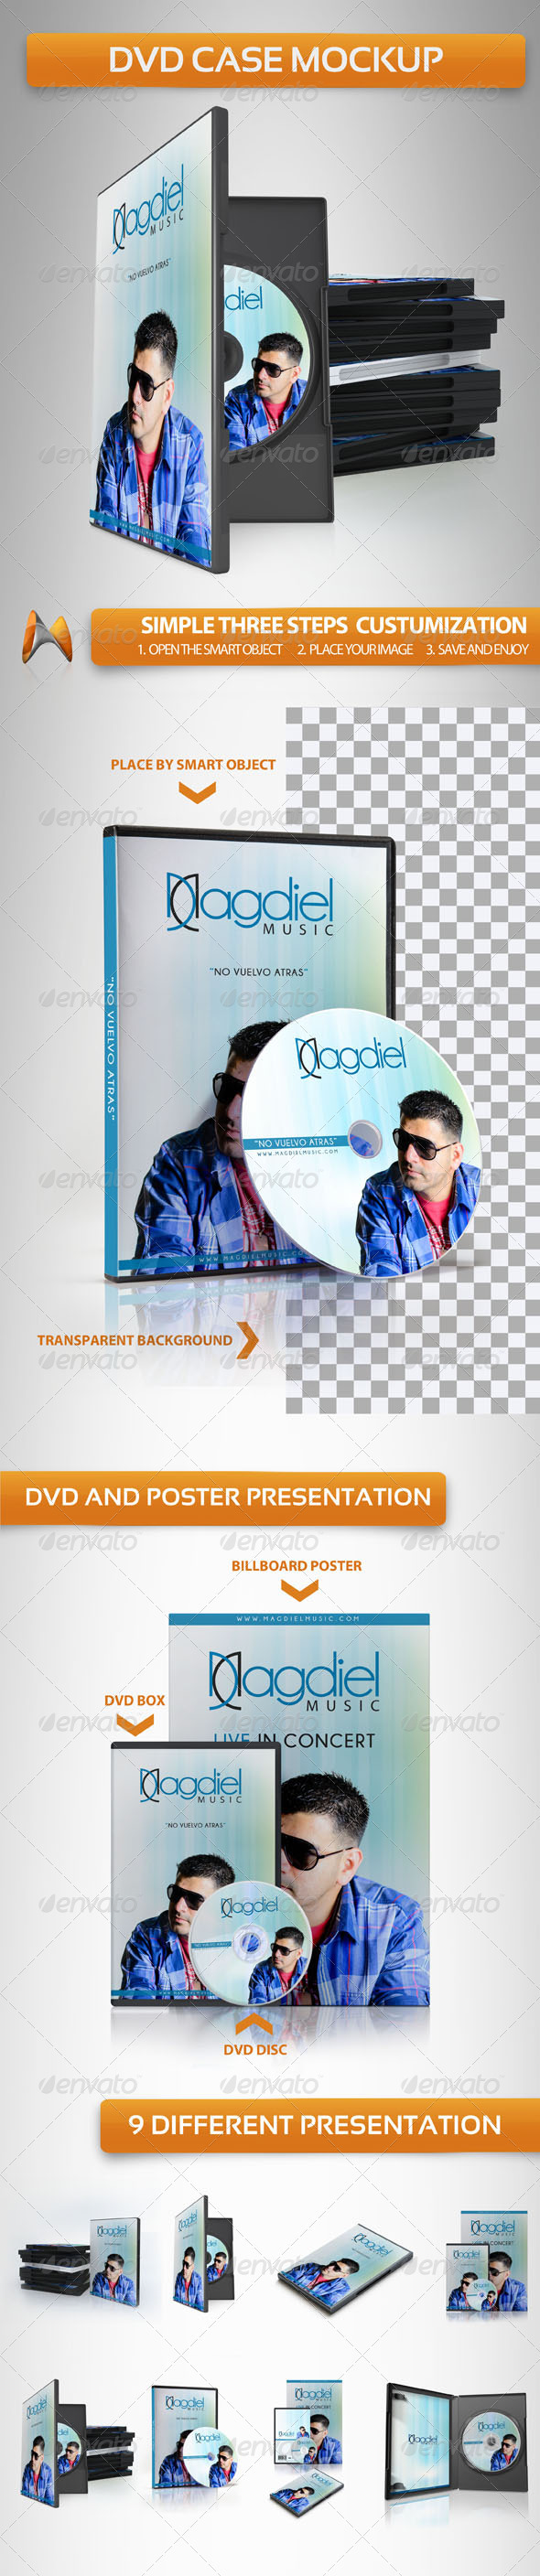 DVD Case Mockup - Discs Packaging